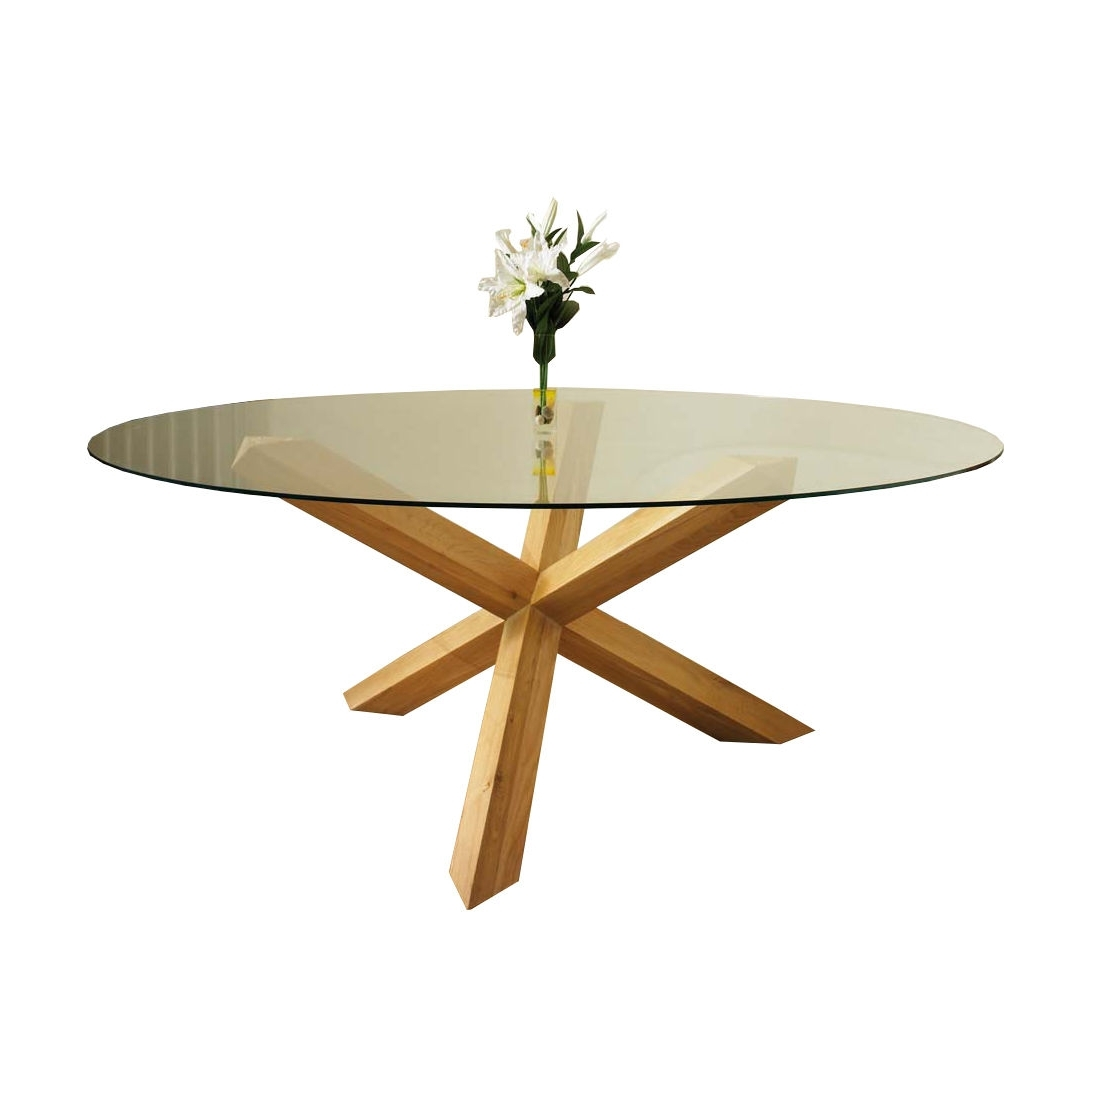 2018 Round Glass And Oak Dining Tables For Tfw 183Cm Round Glass Dining Table With Oak Pedestal (View 19 of 25)